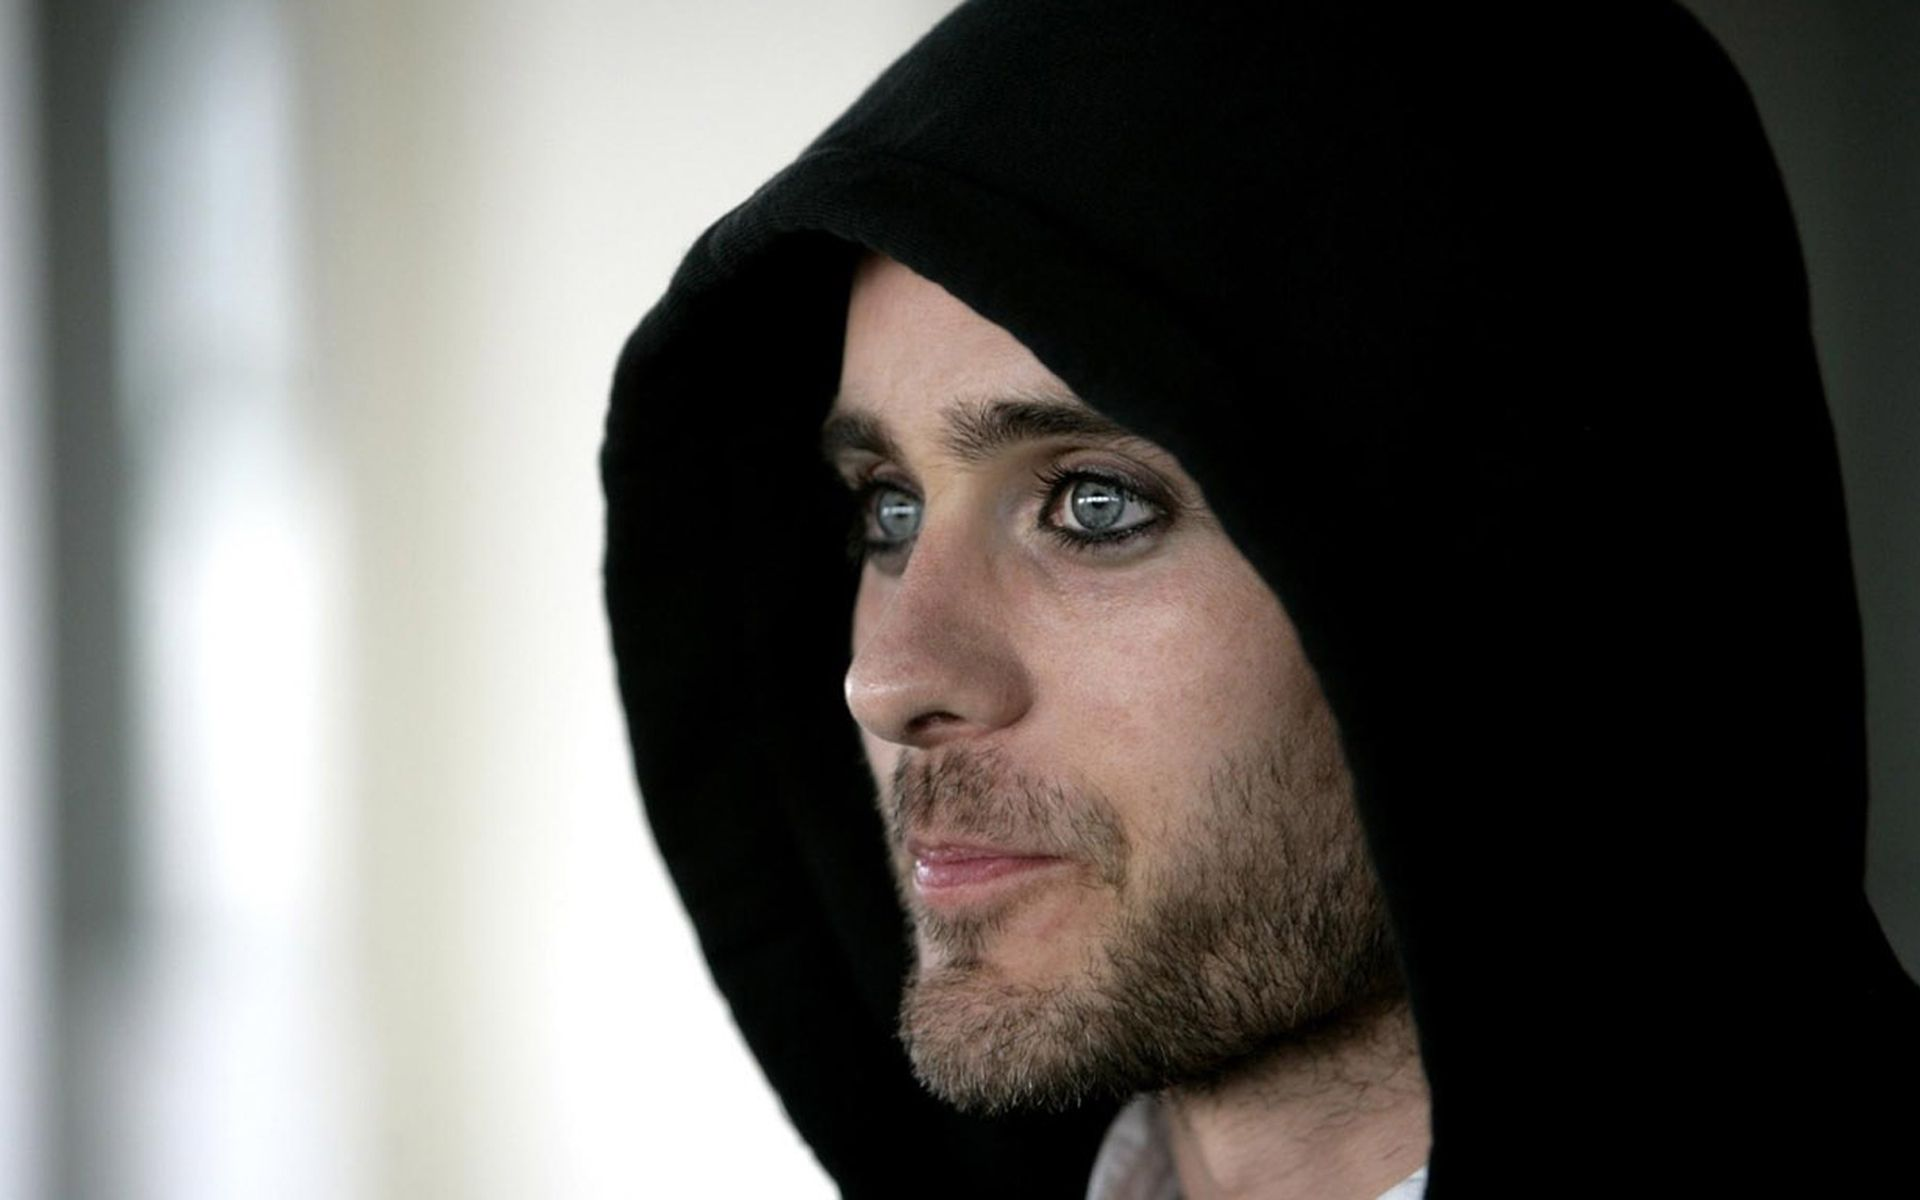 I think this is my Fav pic of @JARED LETO . It's the twinkle of naughtiness in his eyes and the smirk that does it!